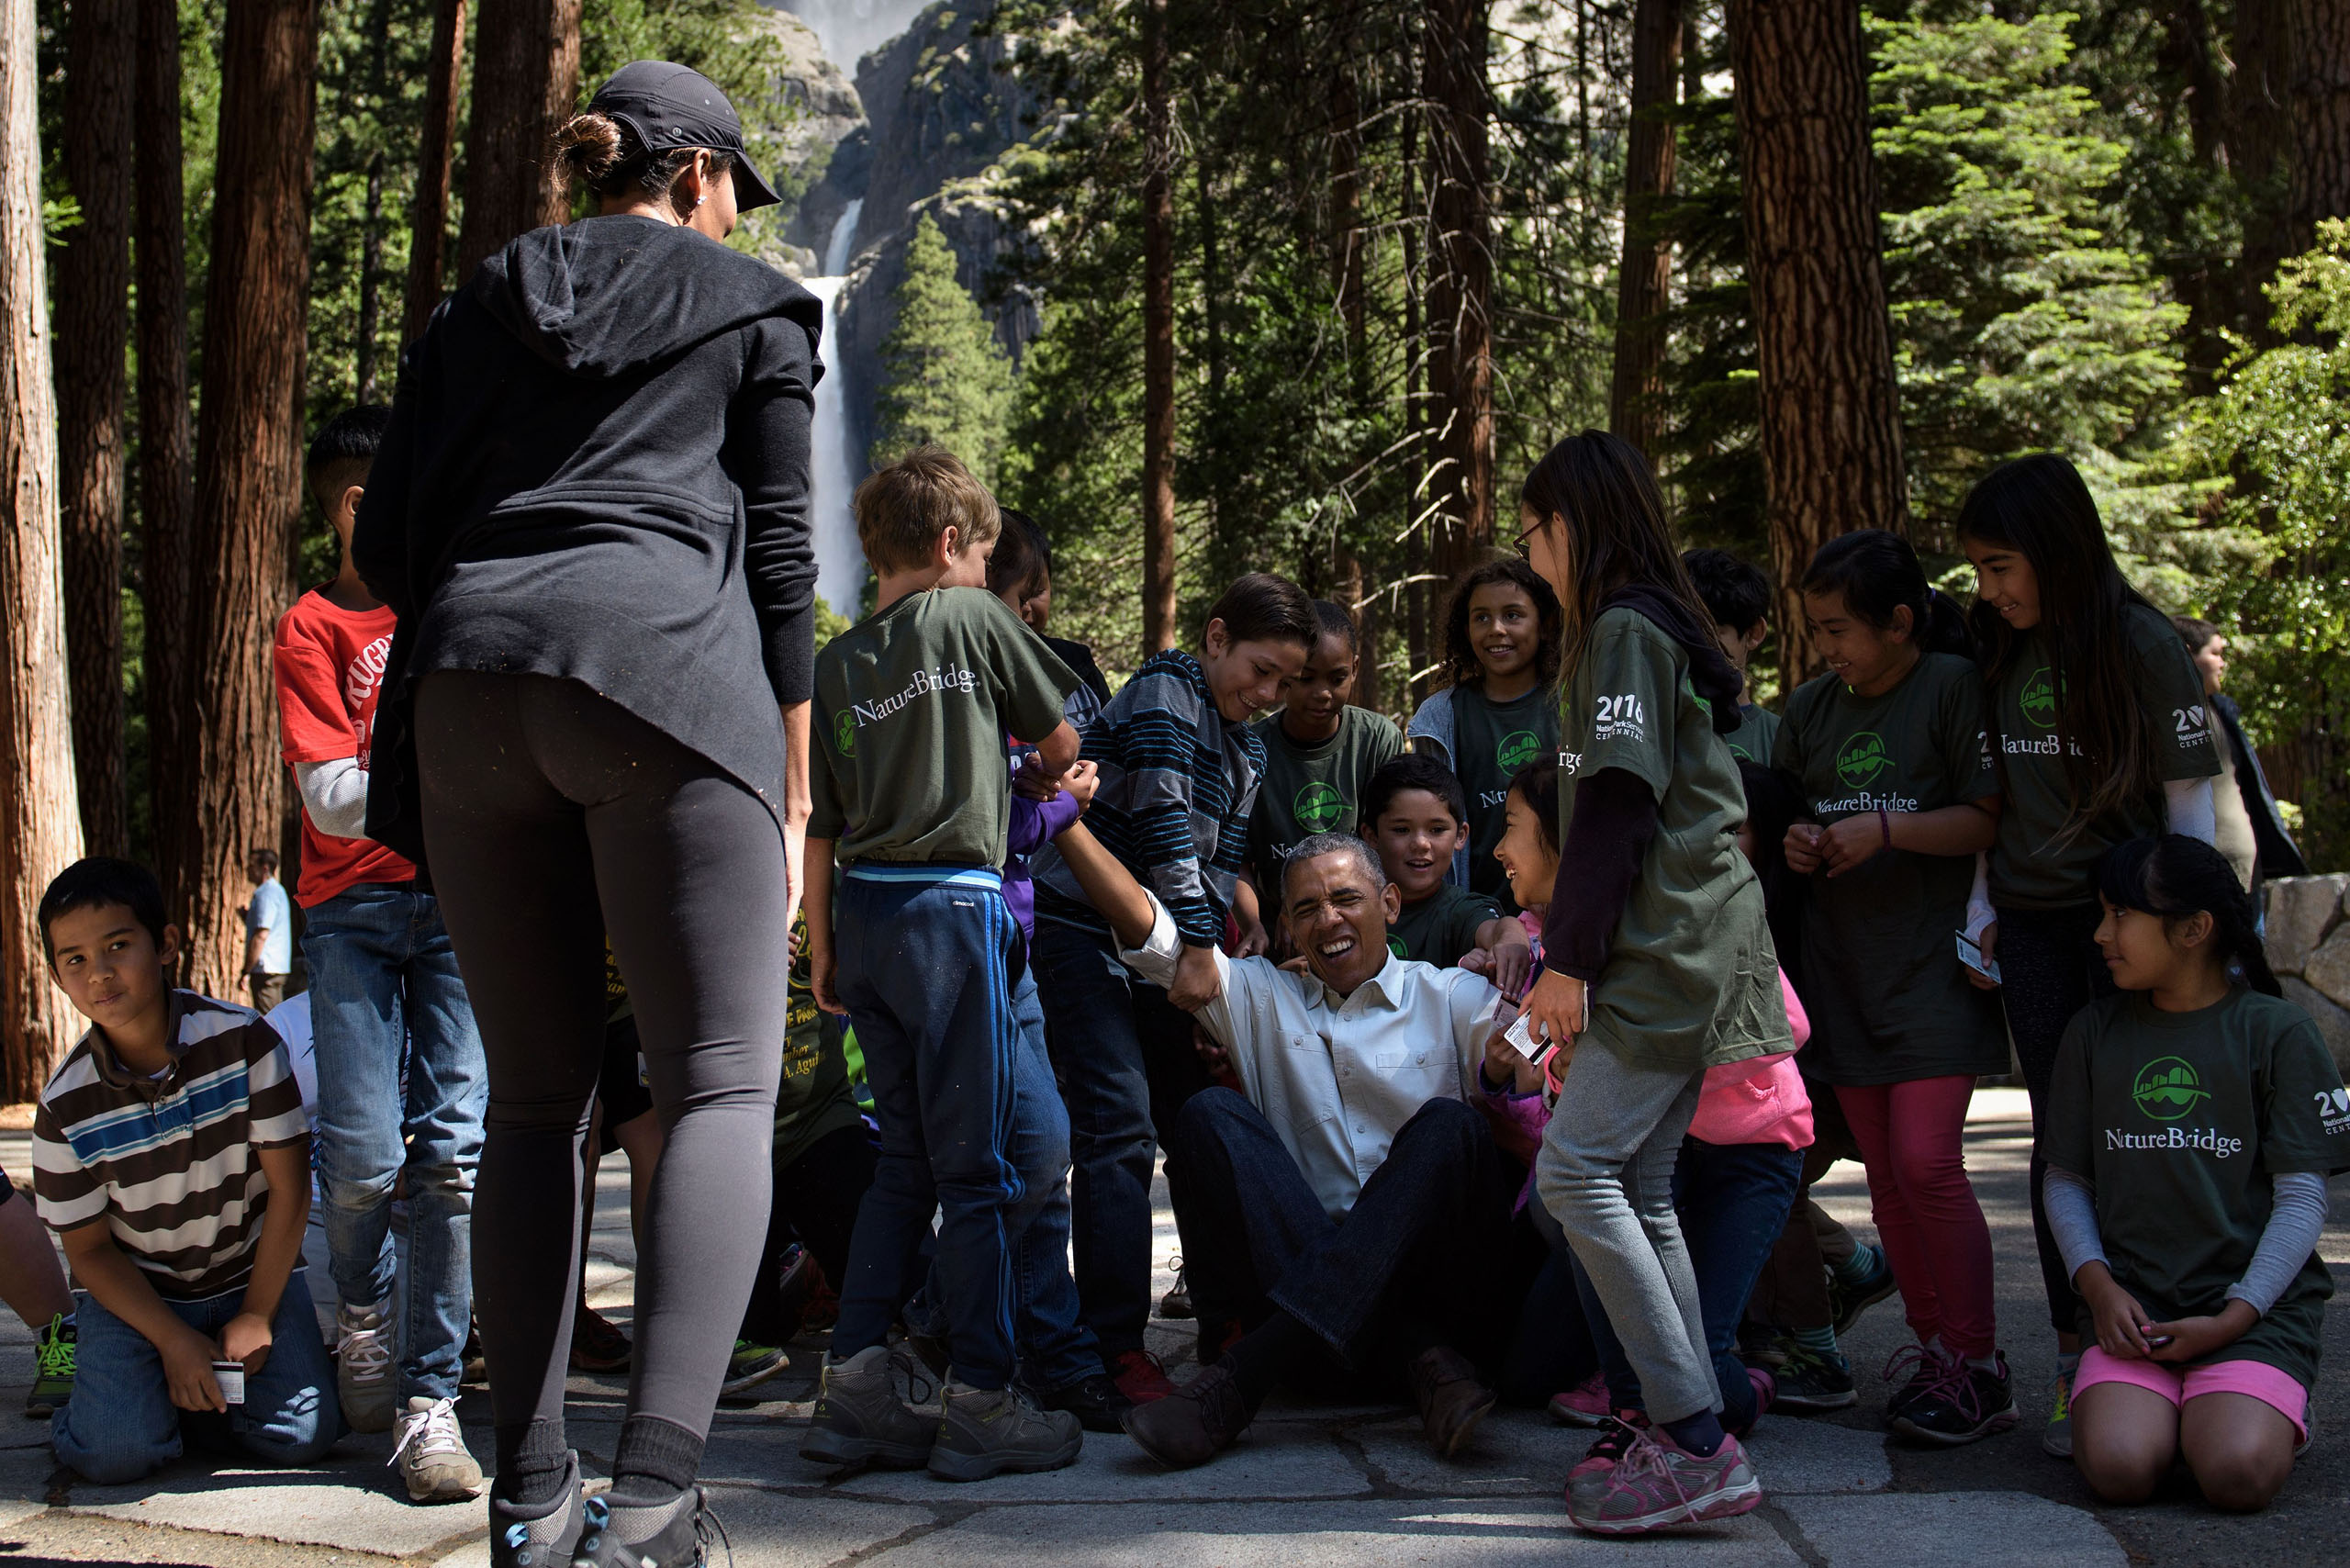 Children help Obama stand after he spoke to them about the  Every Kid in the Park  initiative in Yosemite National Park, California while celebrating the 100th year of US National Parks, on June 18, 2016.